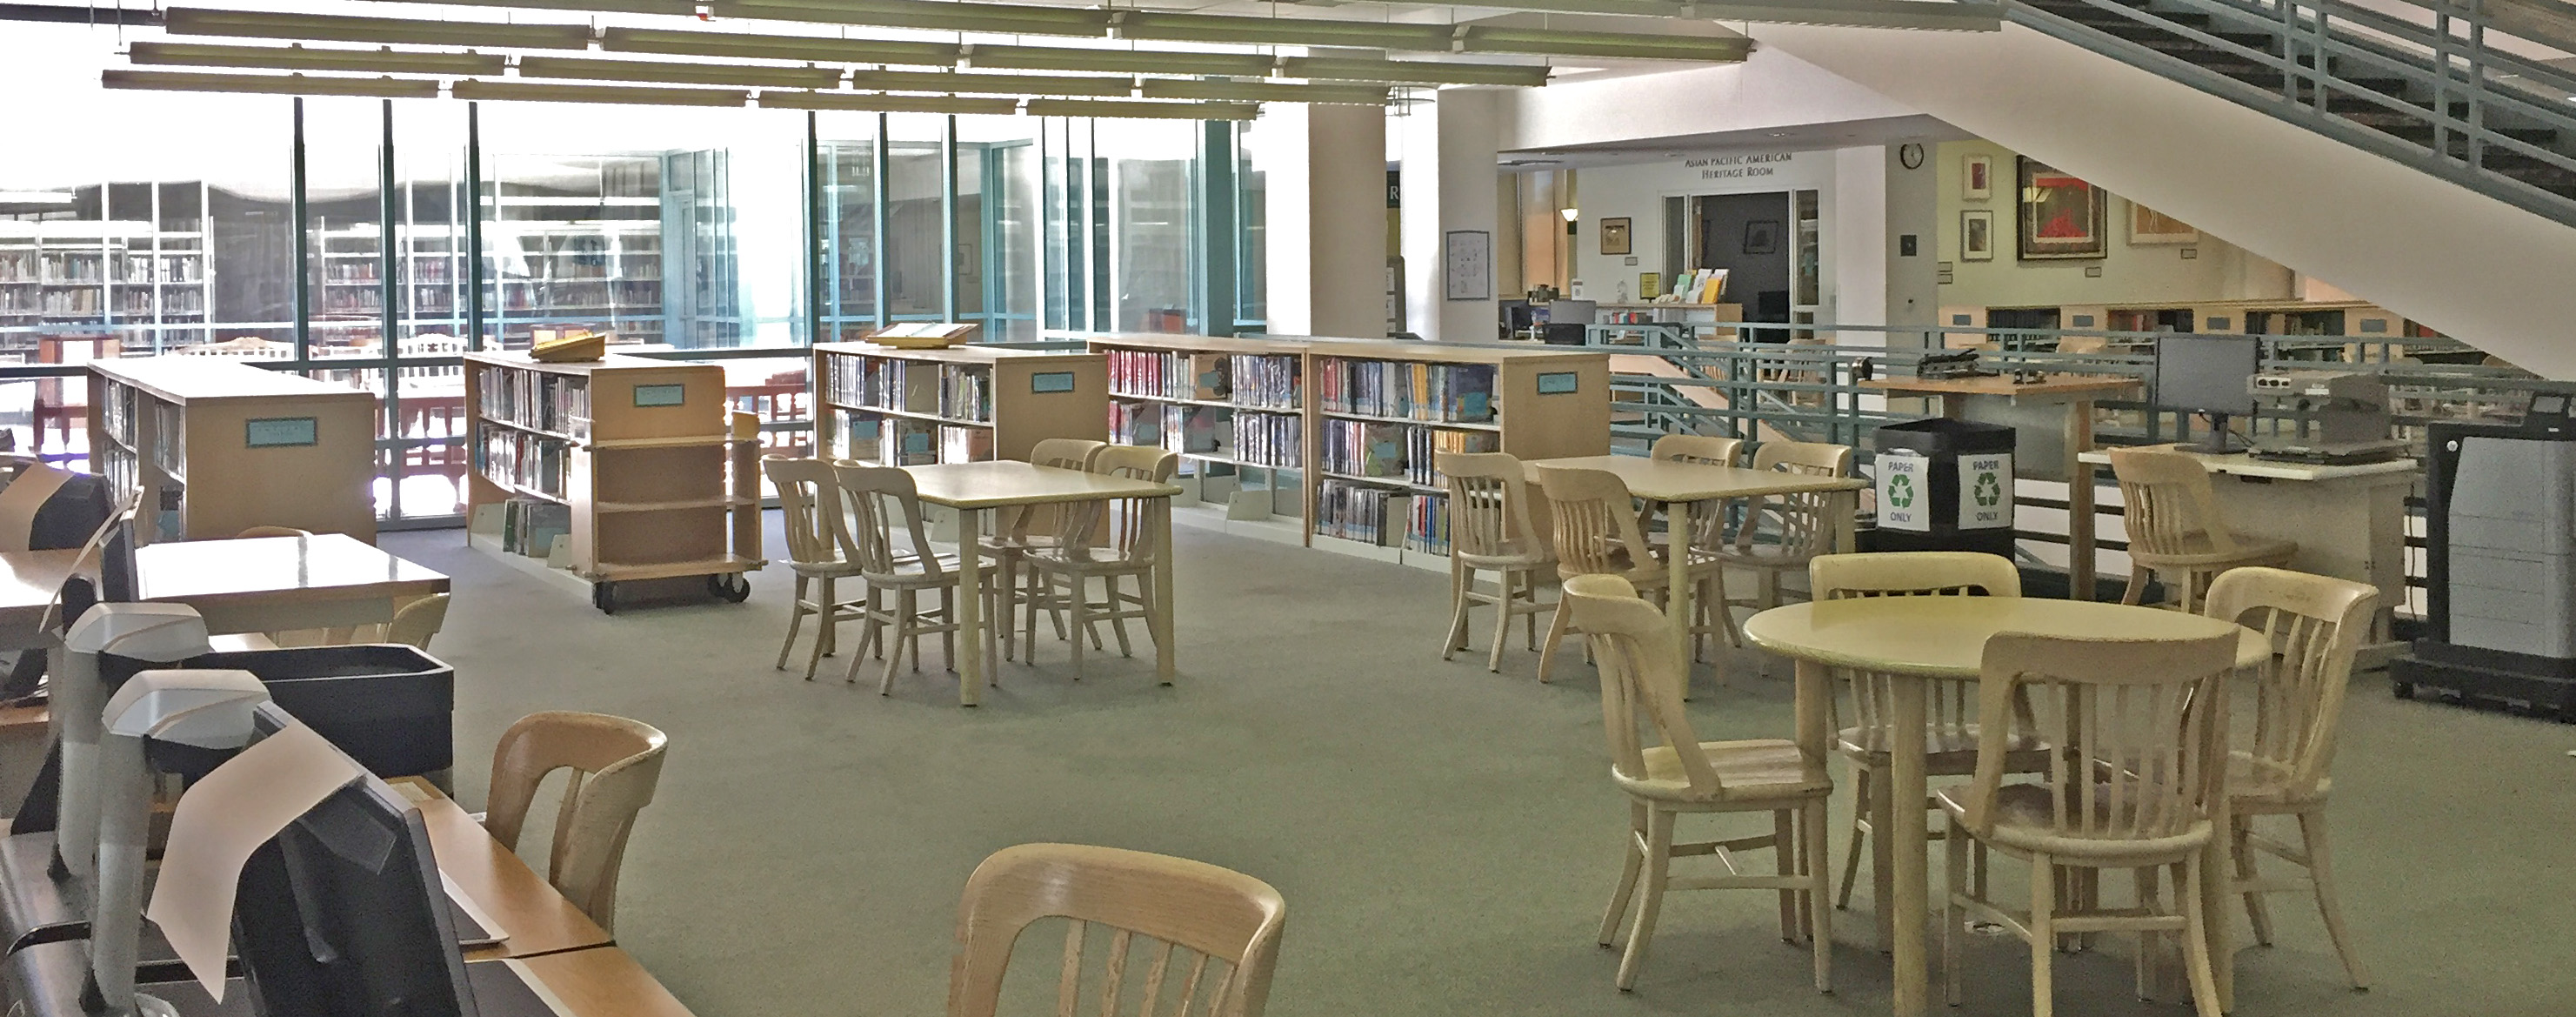 The Textbooks area in the PCC Library